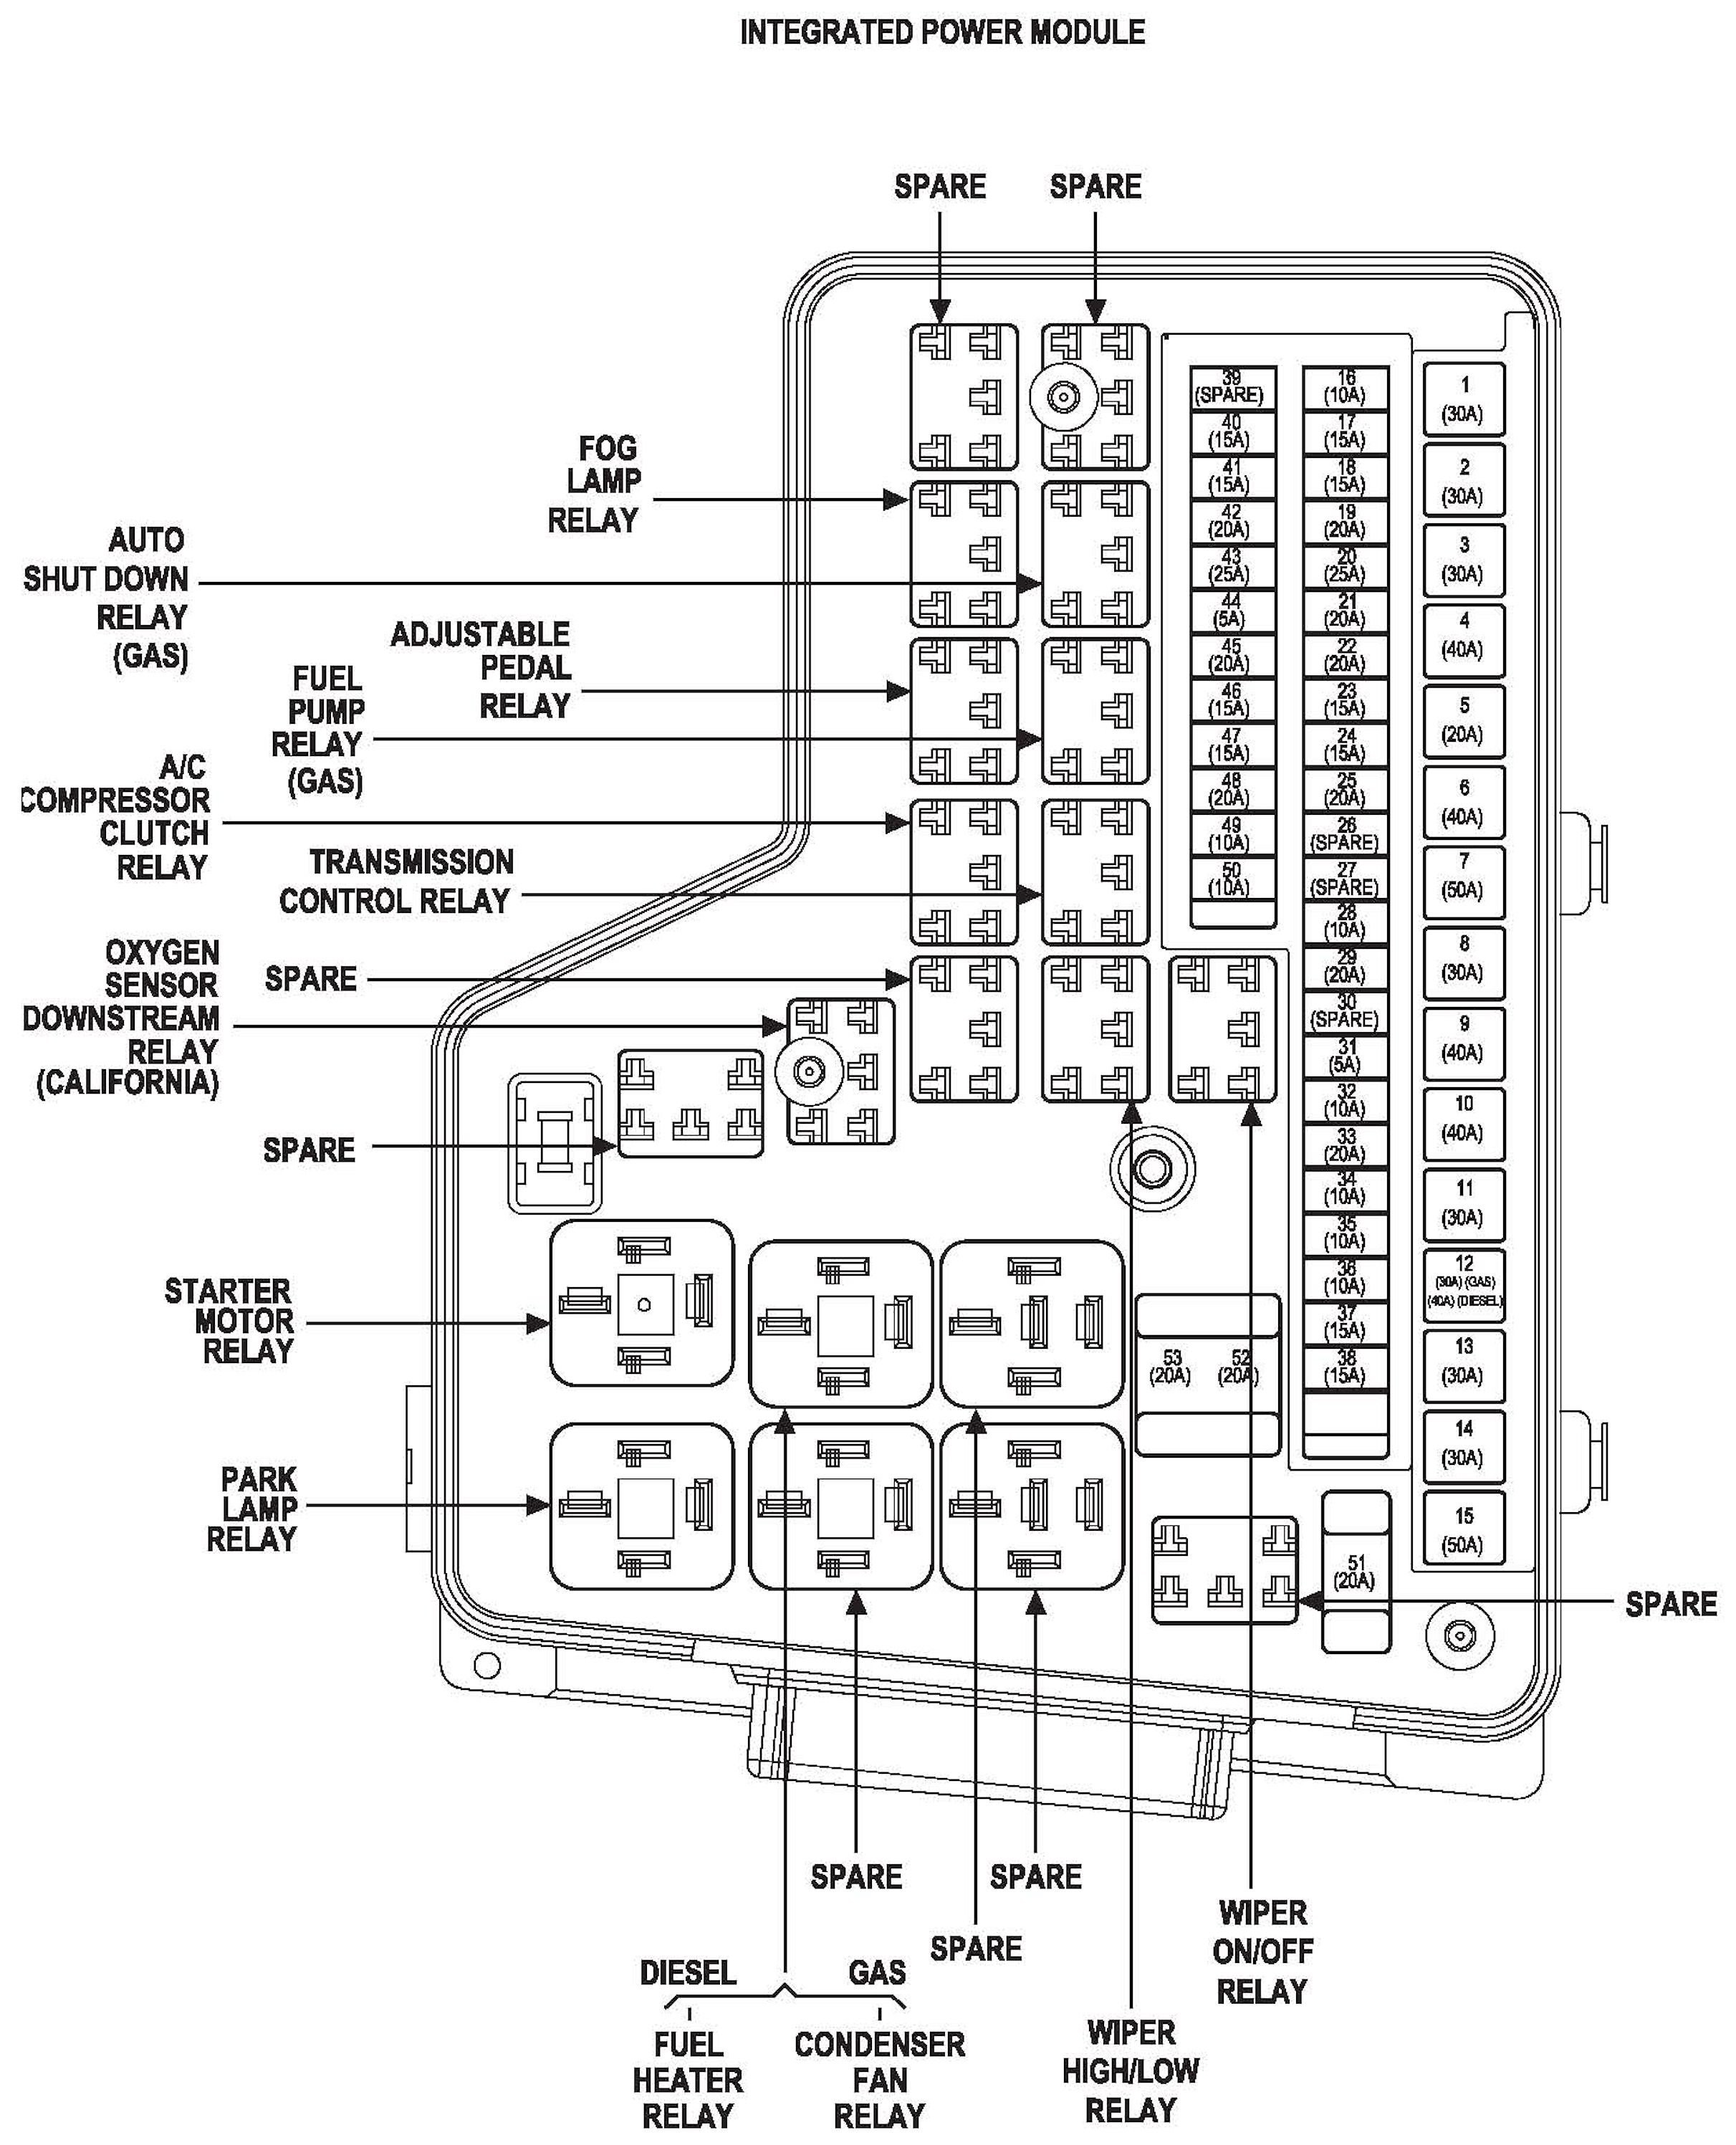 64bad46 2002 dodge neon fuse diagram | wiring library  wiring library